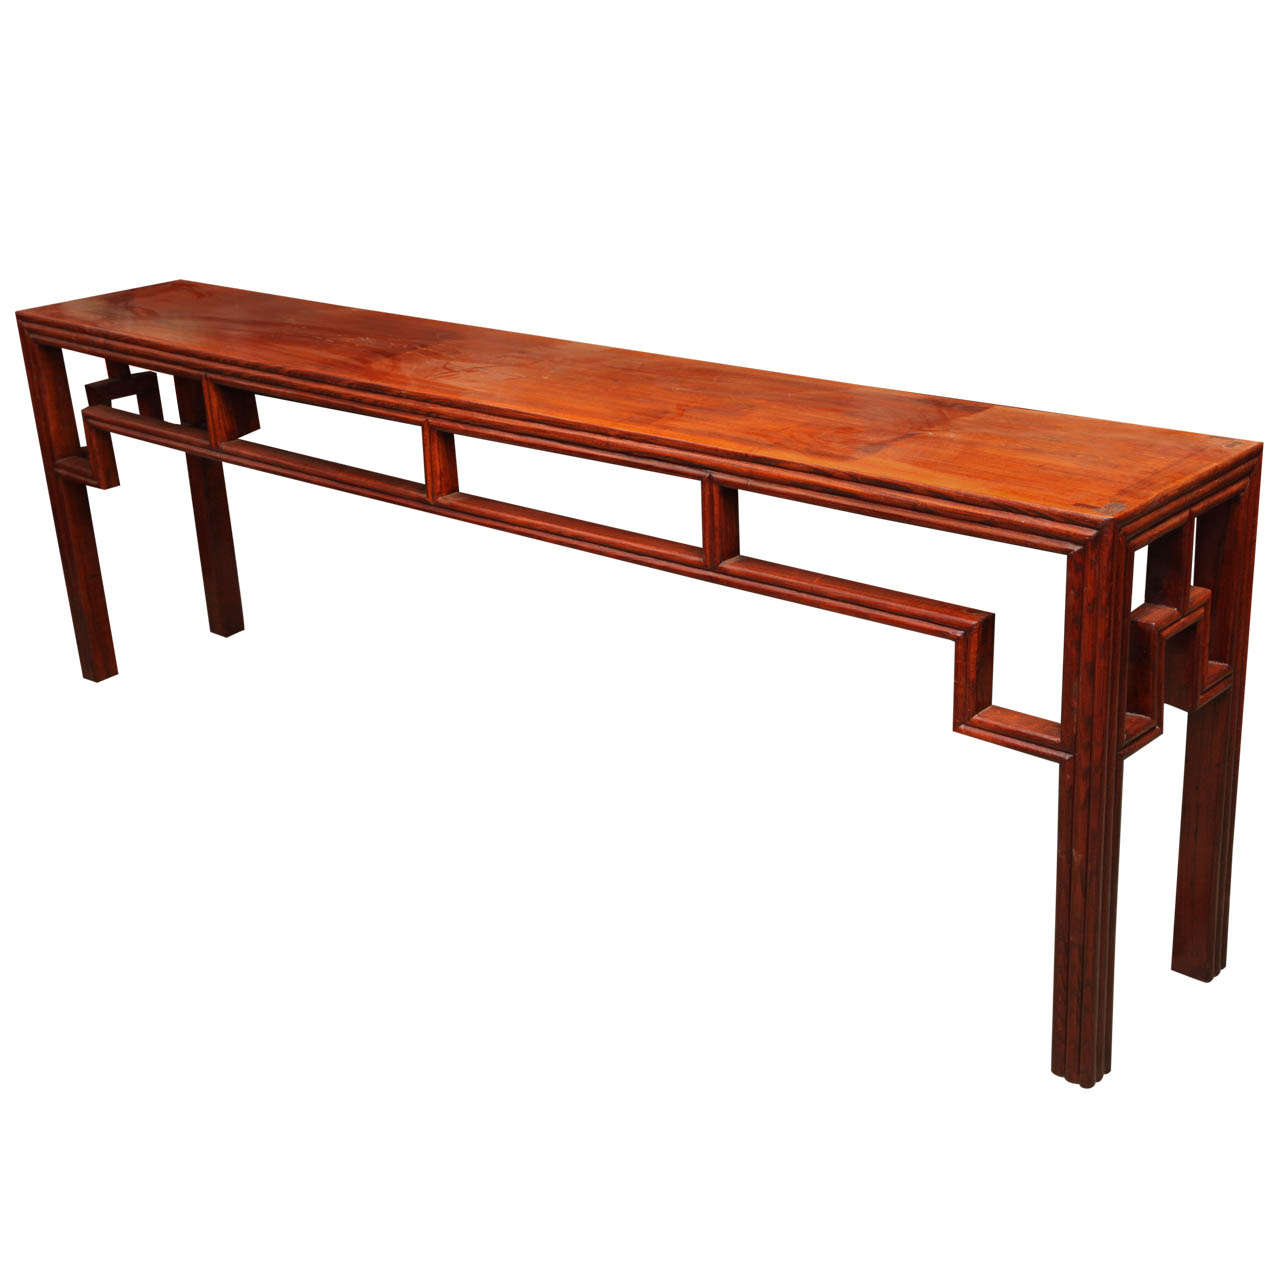 Unusual long antique elm wood console table at stdibs